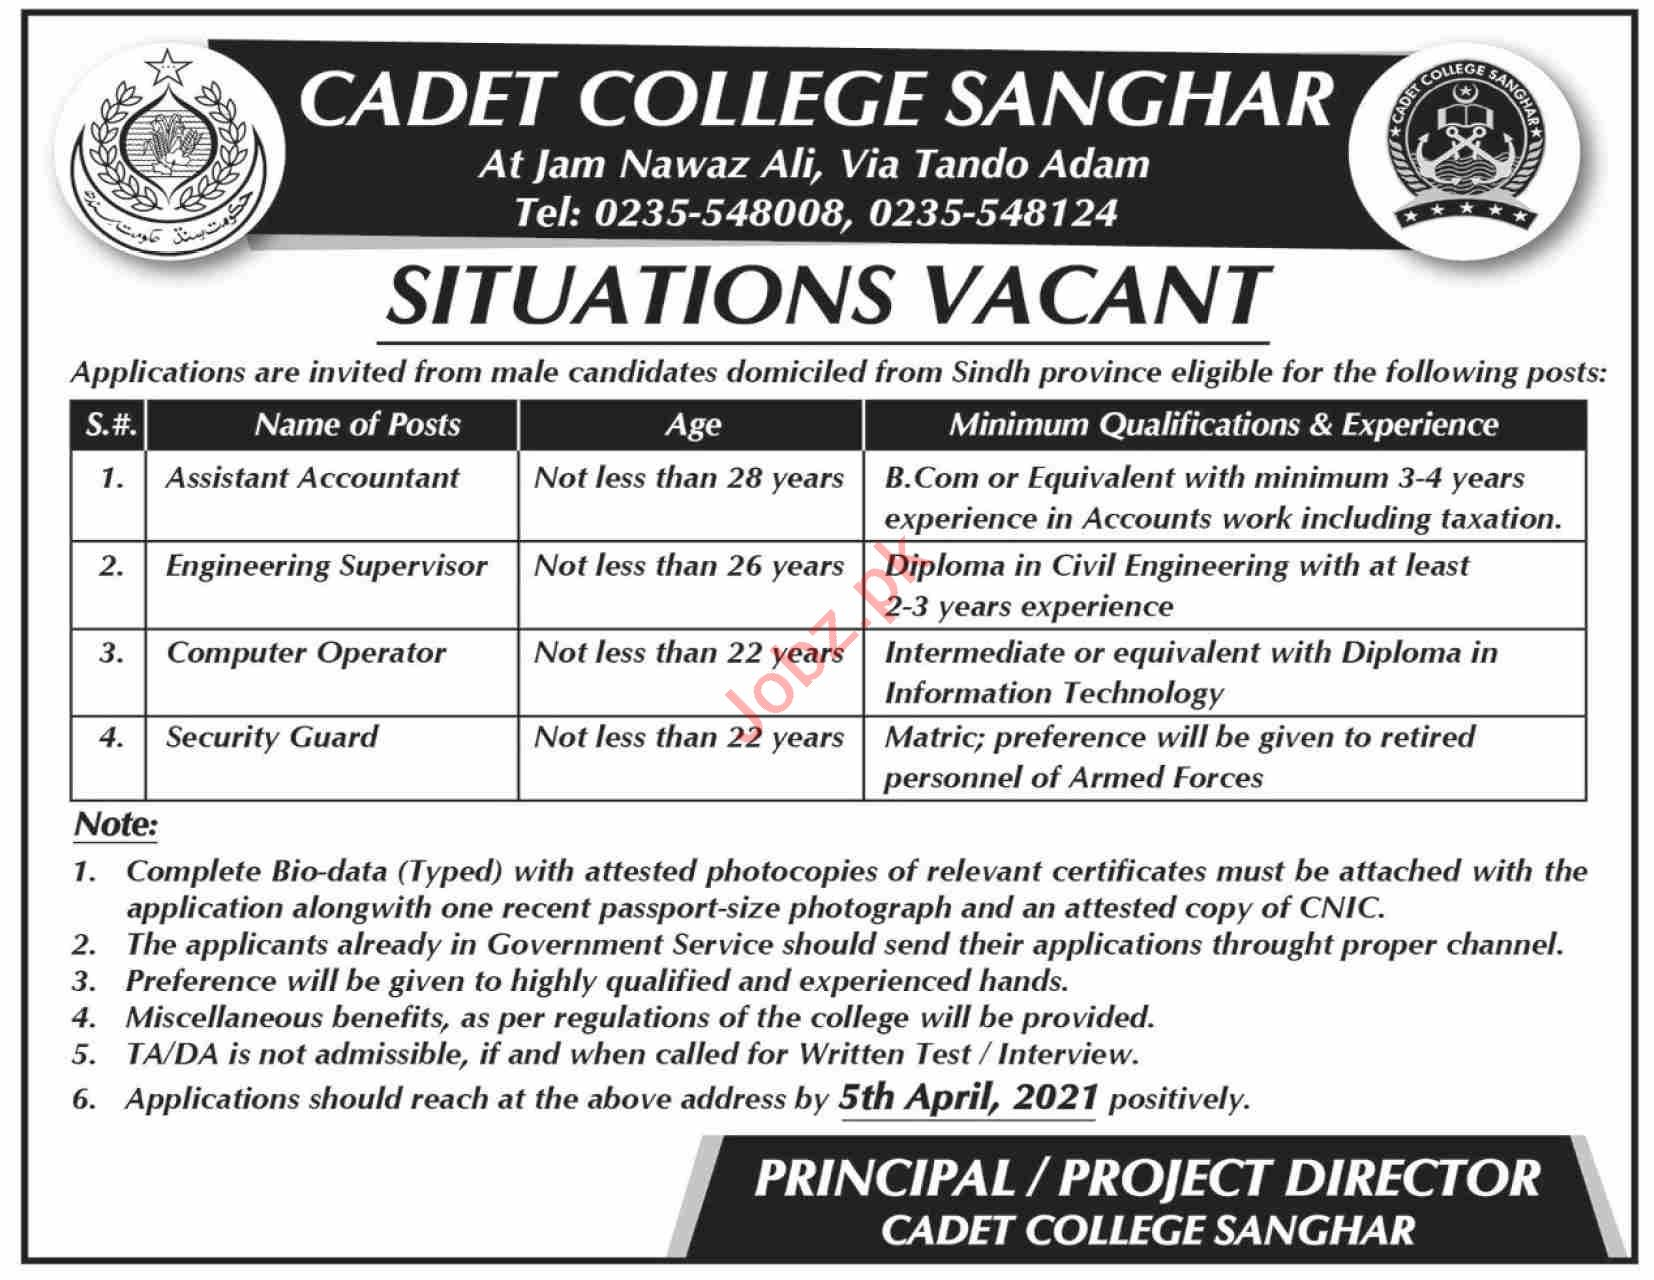 Cadet College Sanghar Jobs 2021 for Assistant Accountant